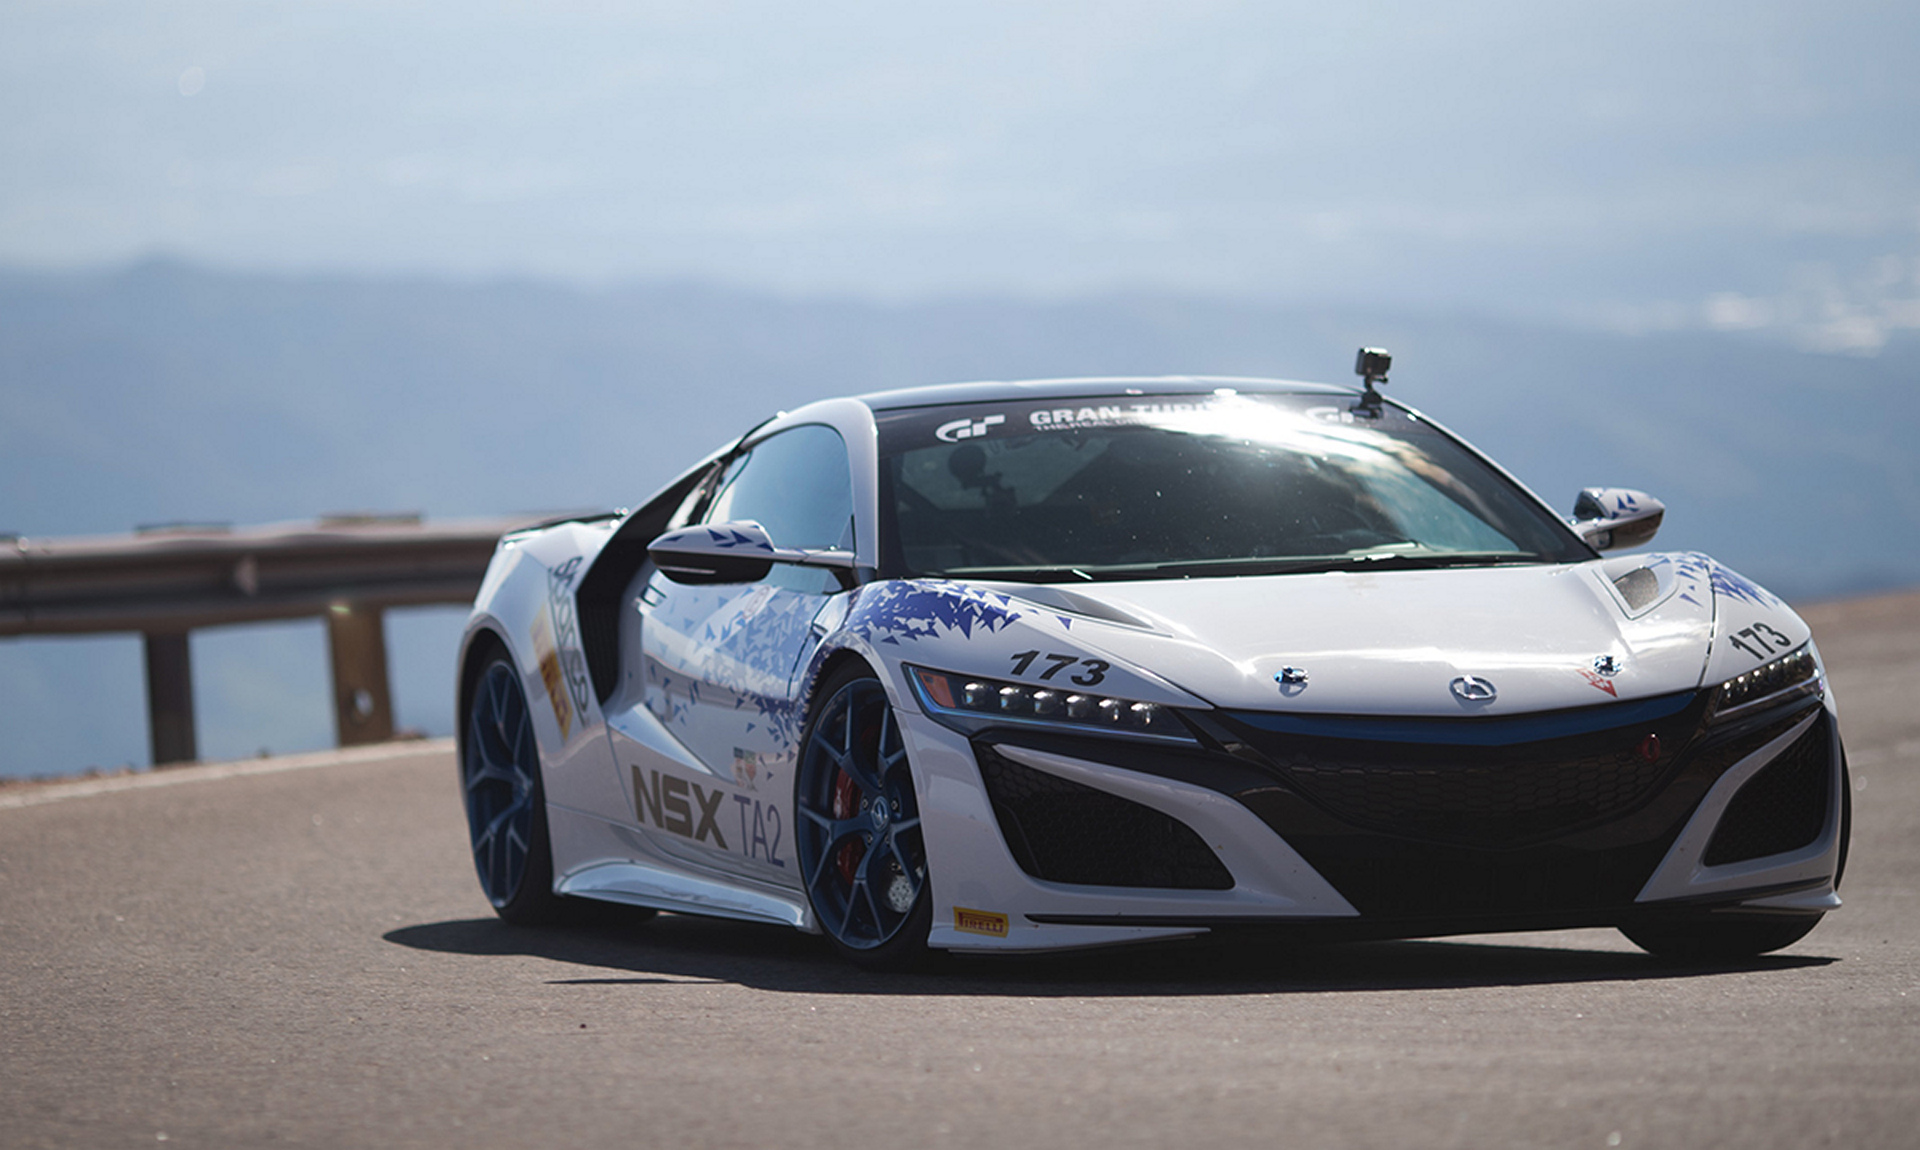 2017 Acura NSX Supercar © Honda Motor Co., Ltd.